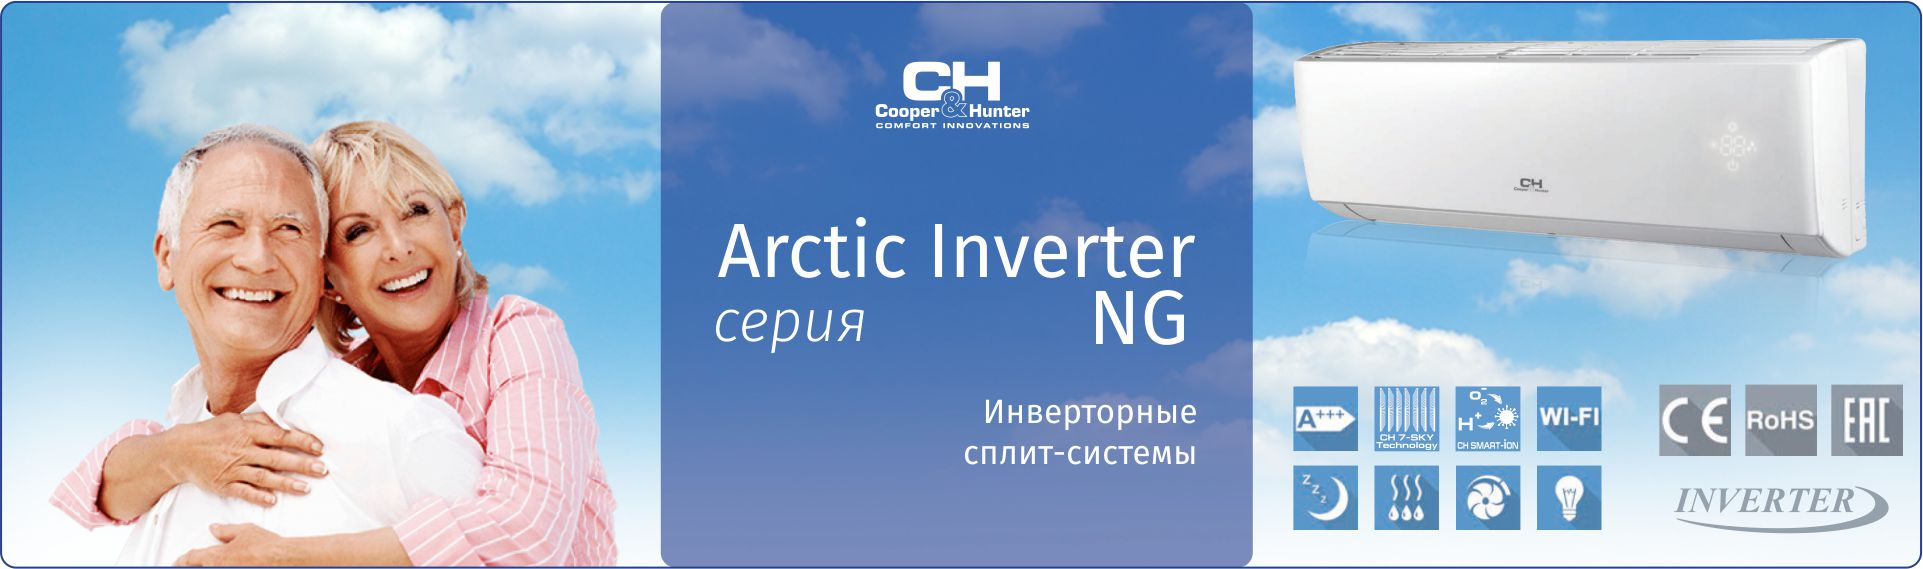 Серия Arctic Inverter